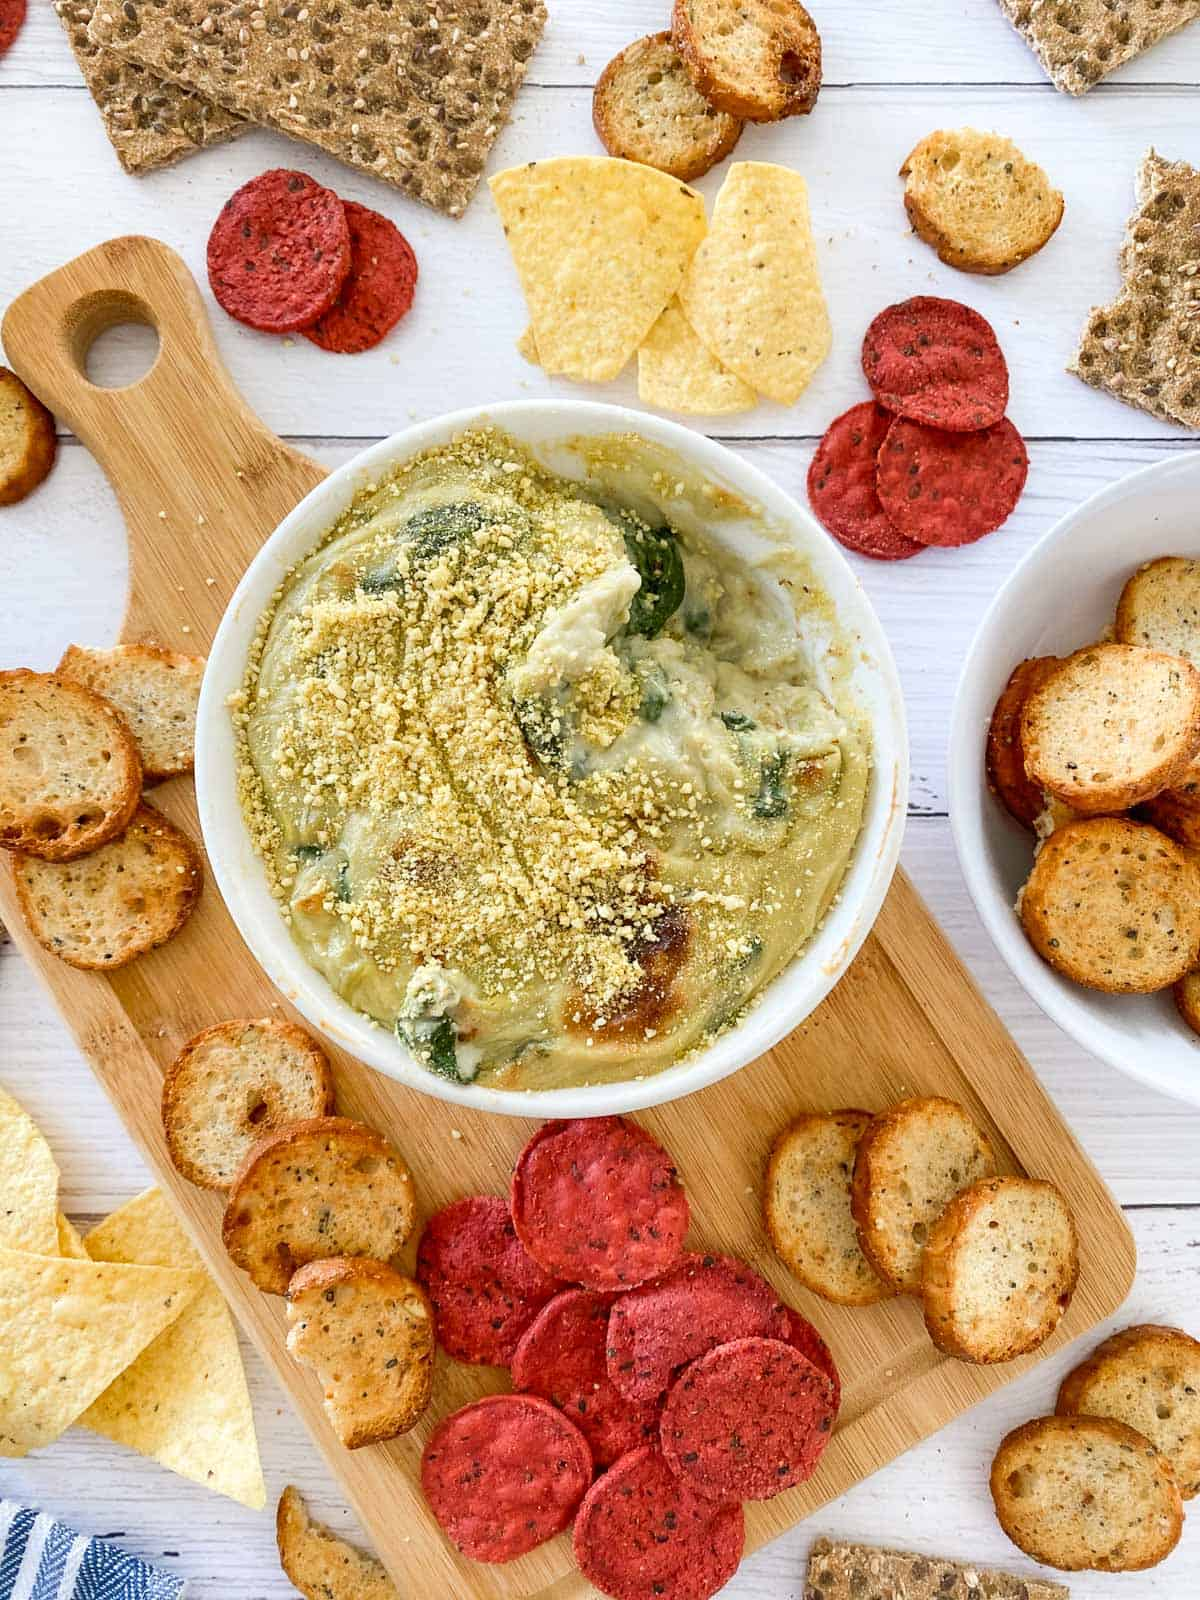 bowl of dip with parmesan garnish on top and crackers and chips scattered around the bowl